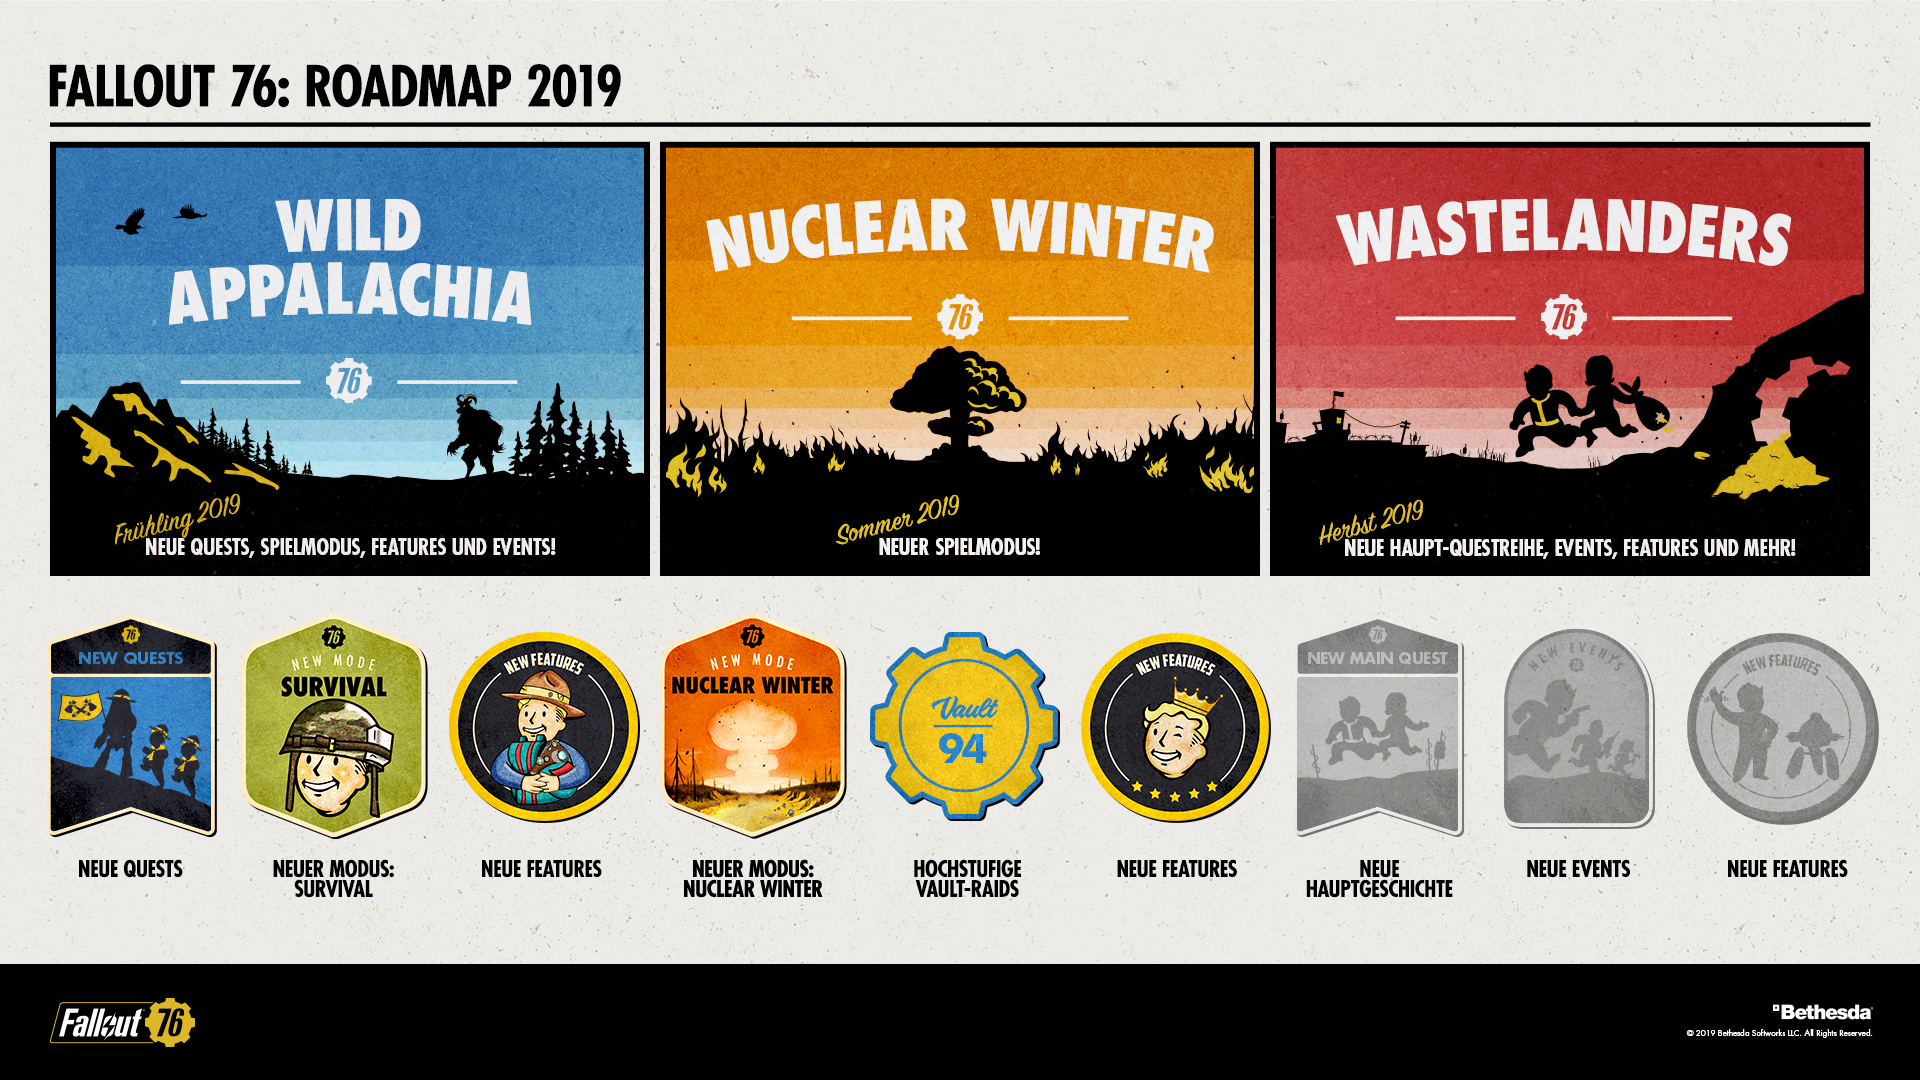 Fallout 76 | Fallout 76 - 100 Days, Roadmap for 2019